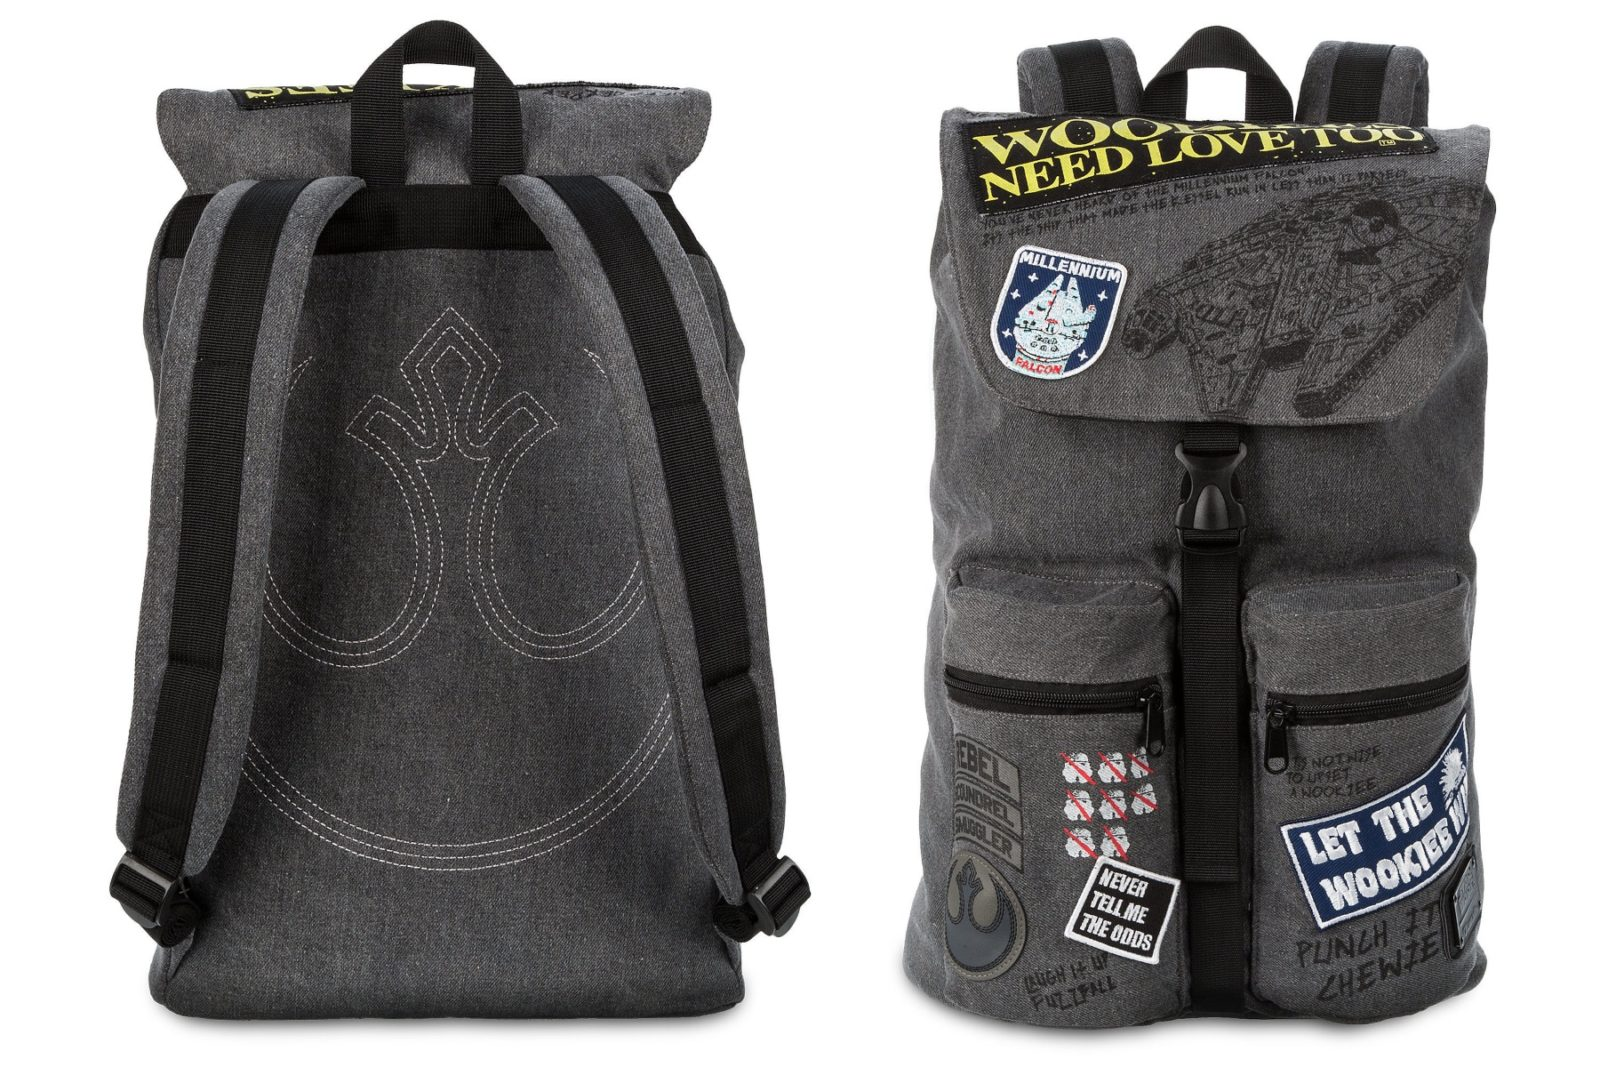 Star Wars Wookiee Backpack by Loungefly